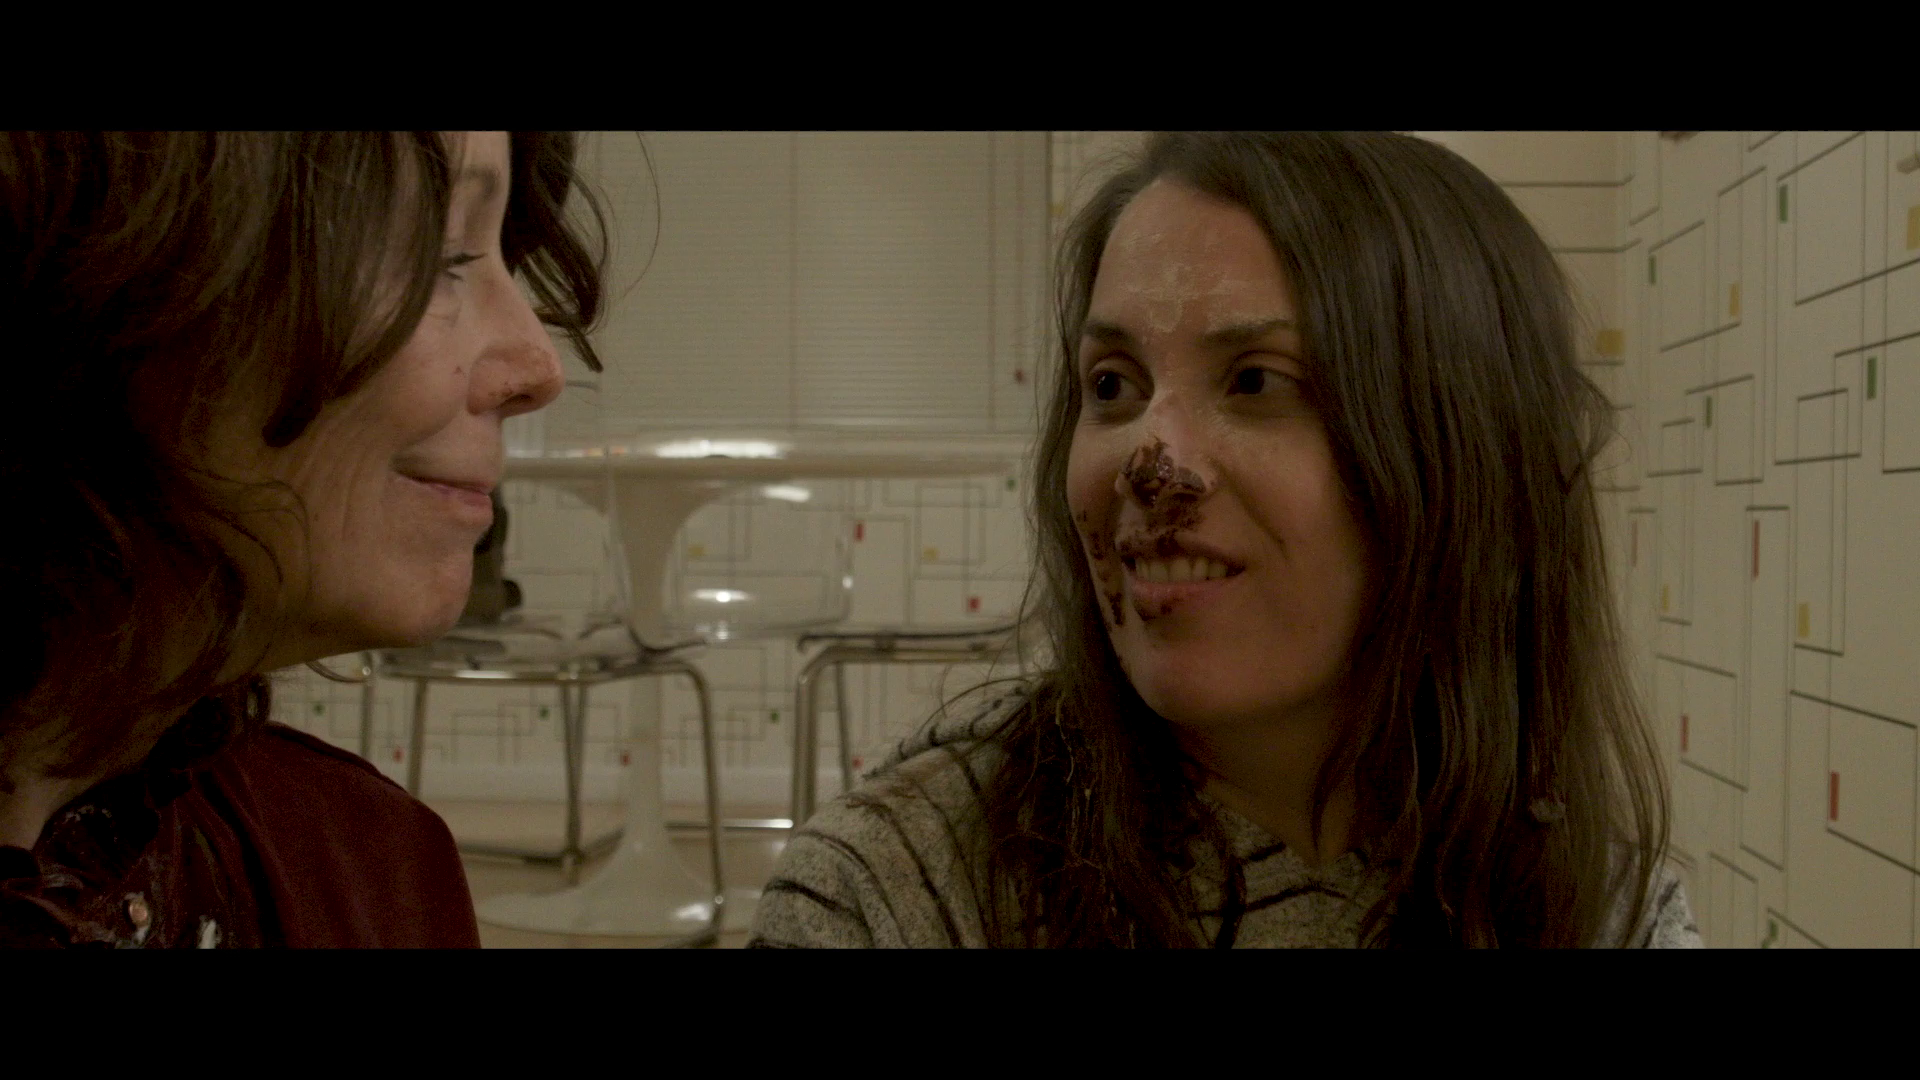 Mom's cancer diagnosis meets a dessert gone wrong in this touching, offbeat mother/daughter dramedy.